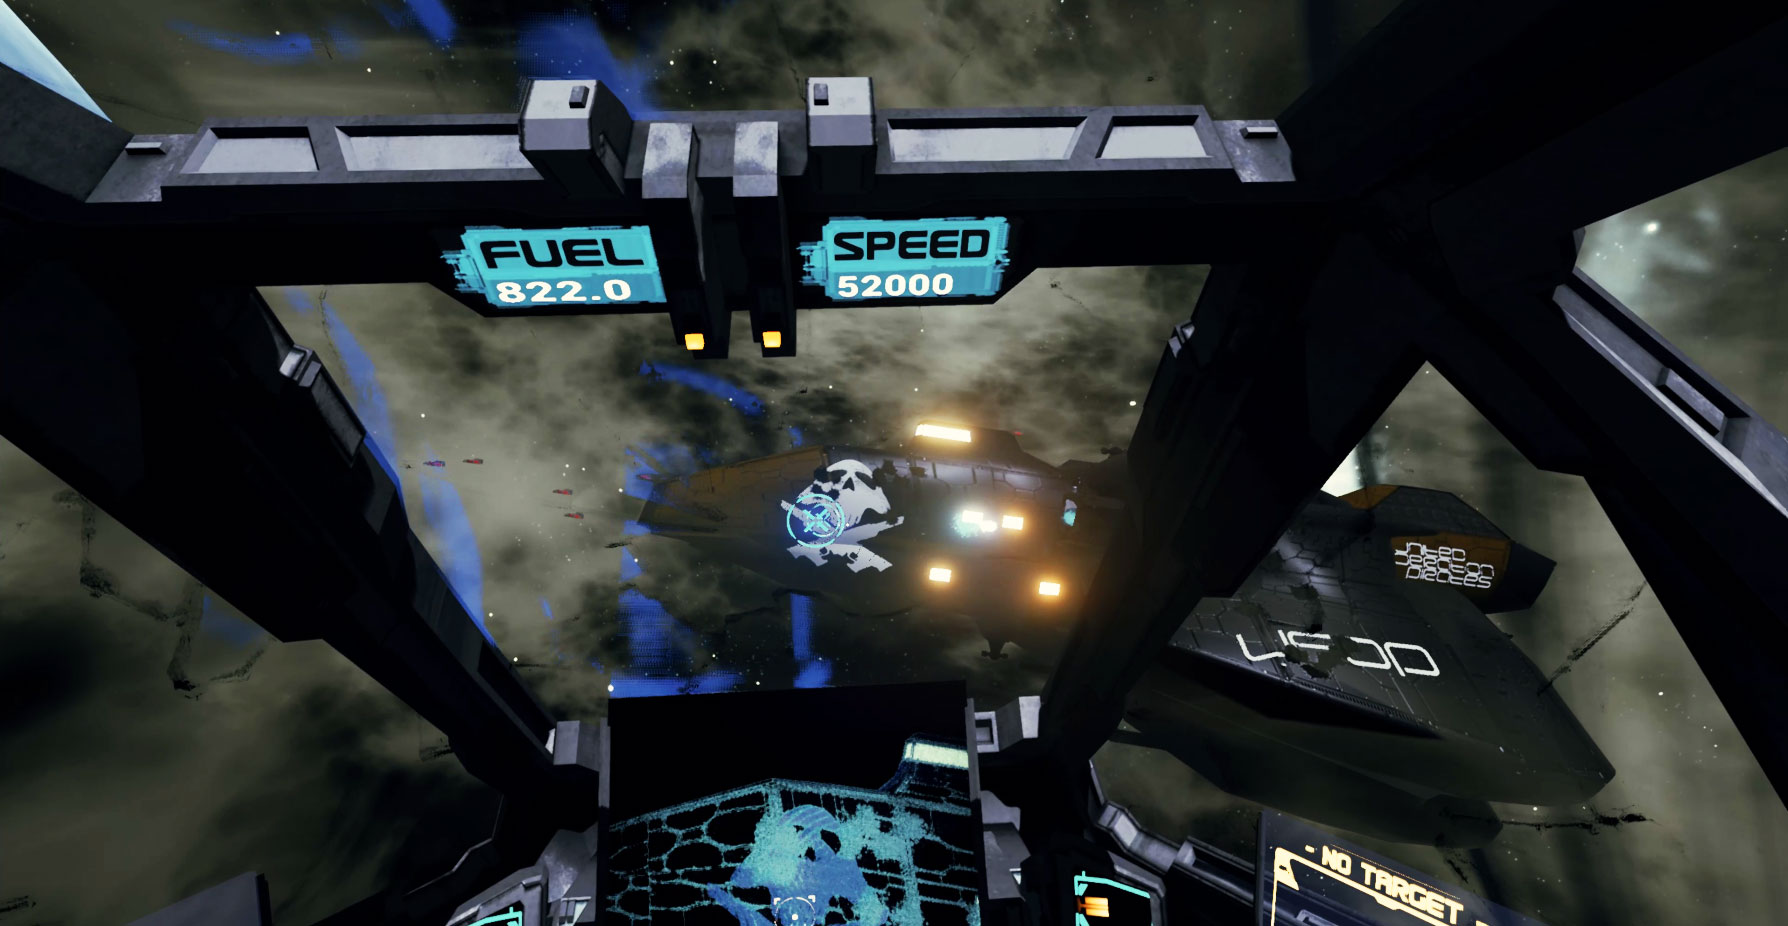 CDF Starfighter : 90s styled space combat simulator designed for VR